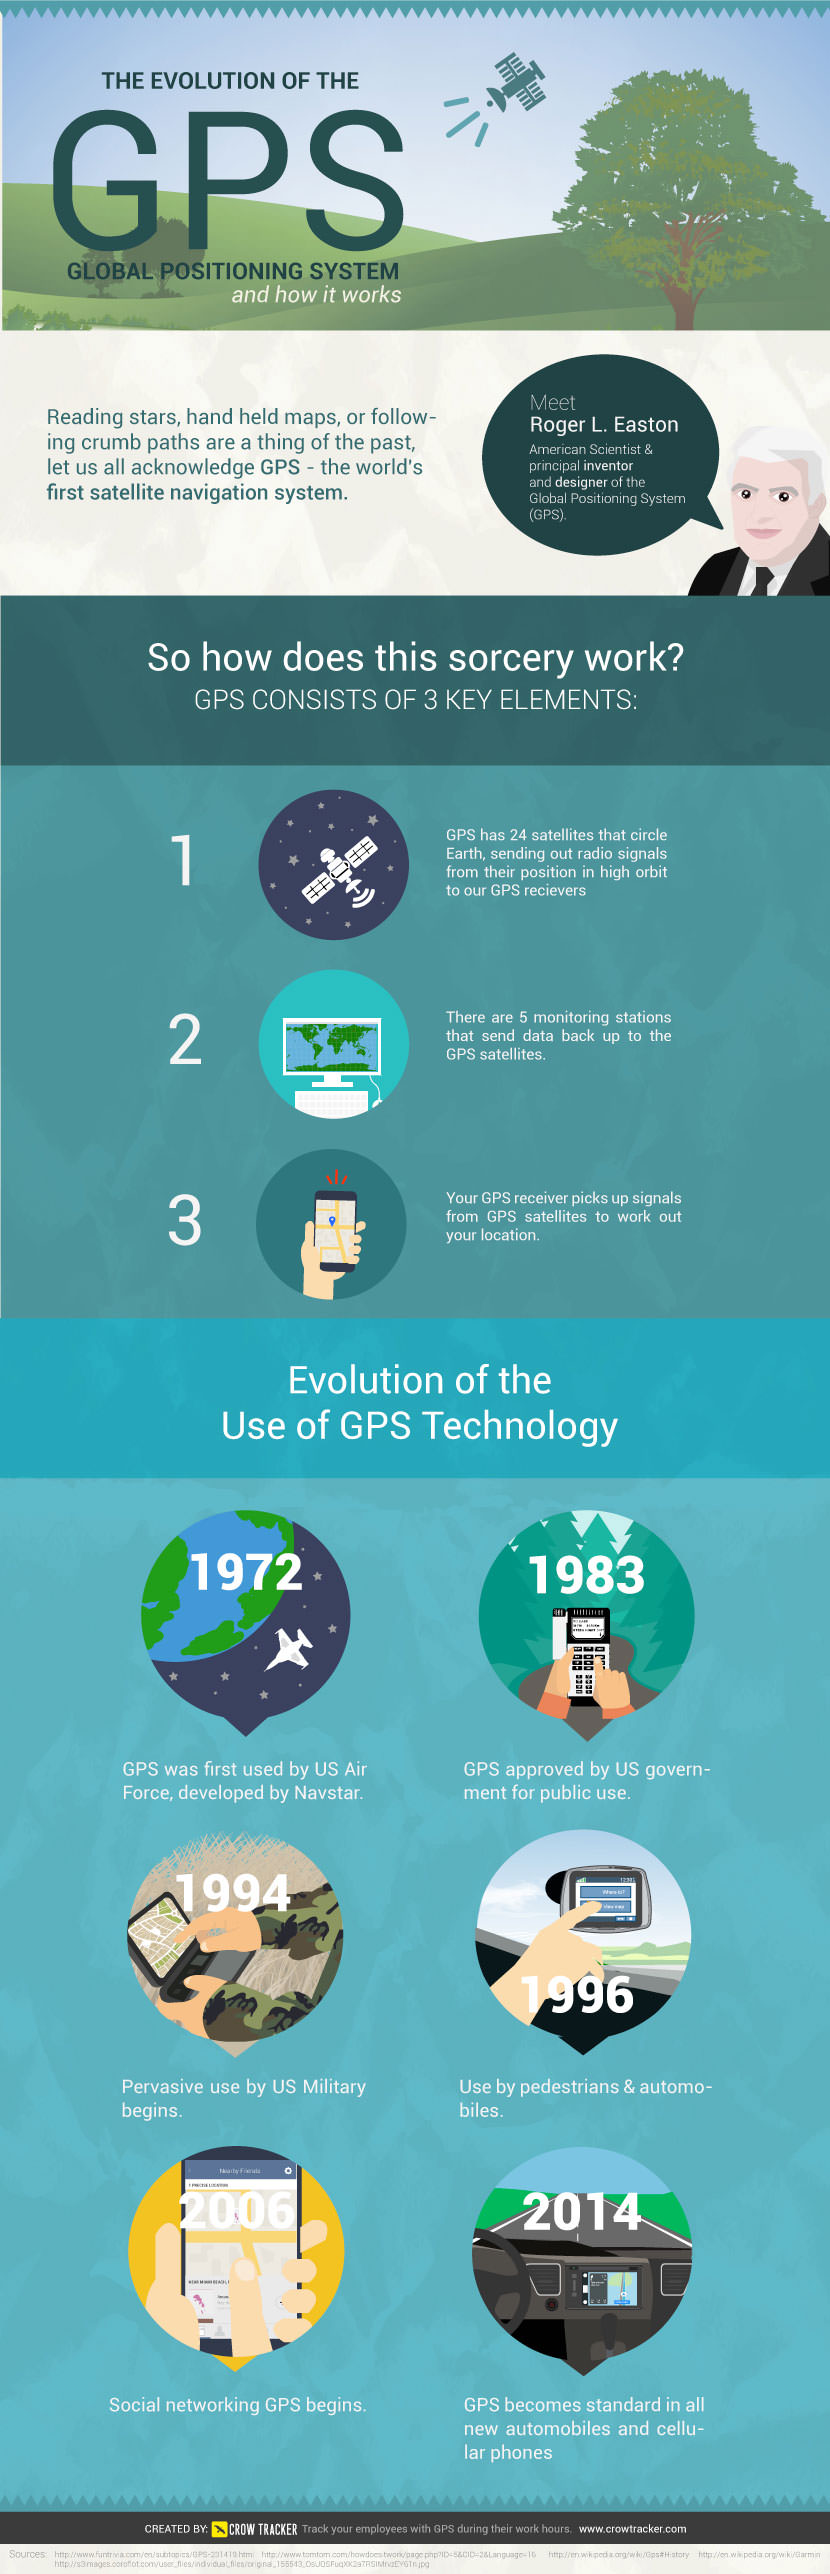 evoloution of gps infographic